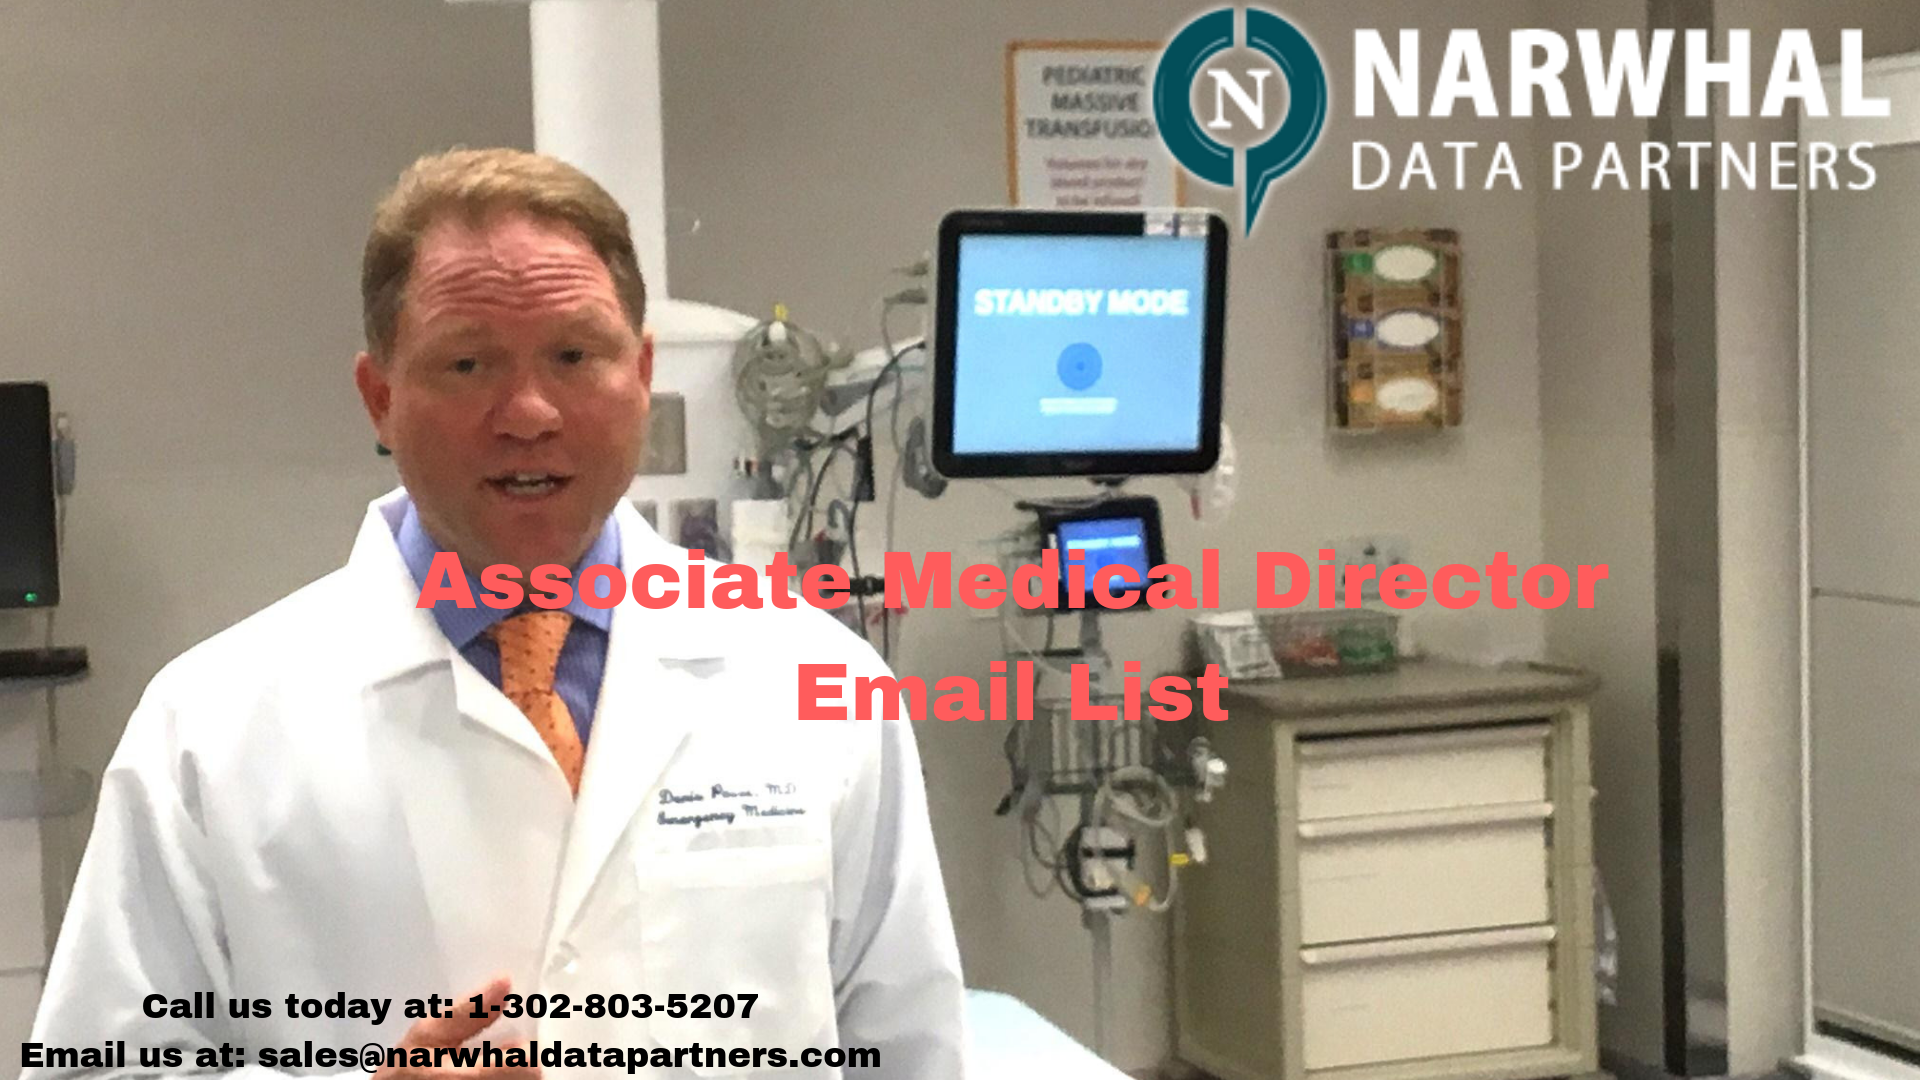 http://narwhaldatapartners.com/associate-medical-director-email-list.html